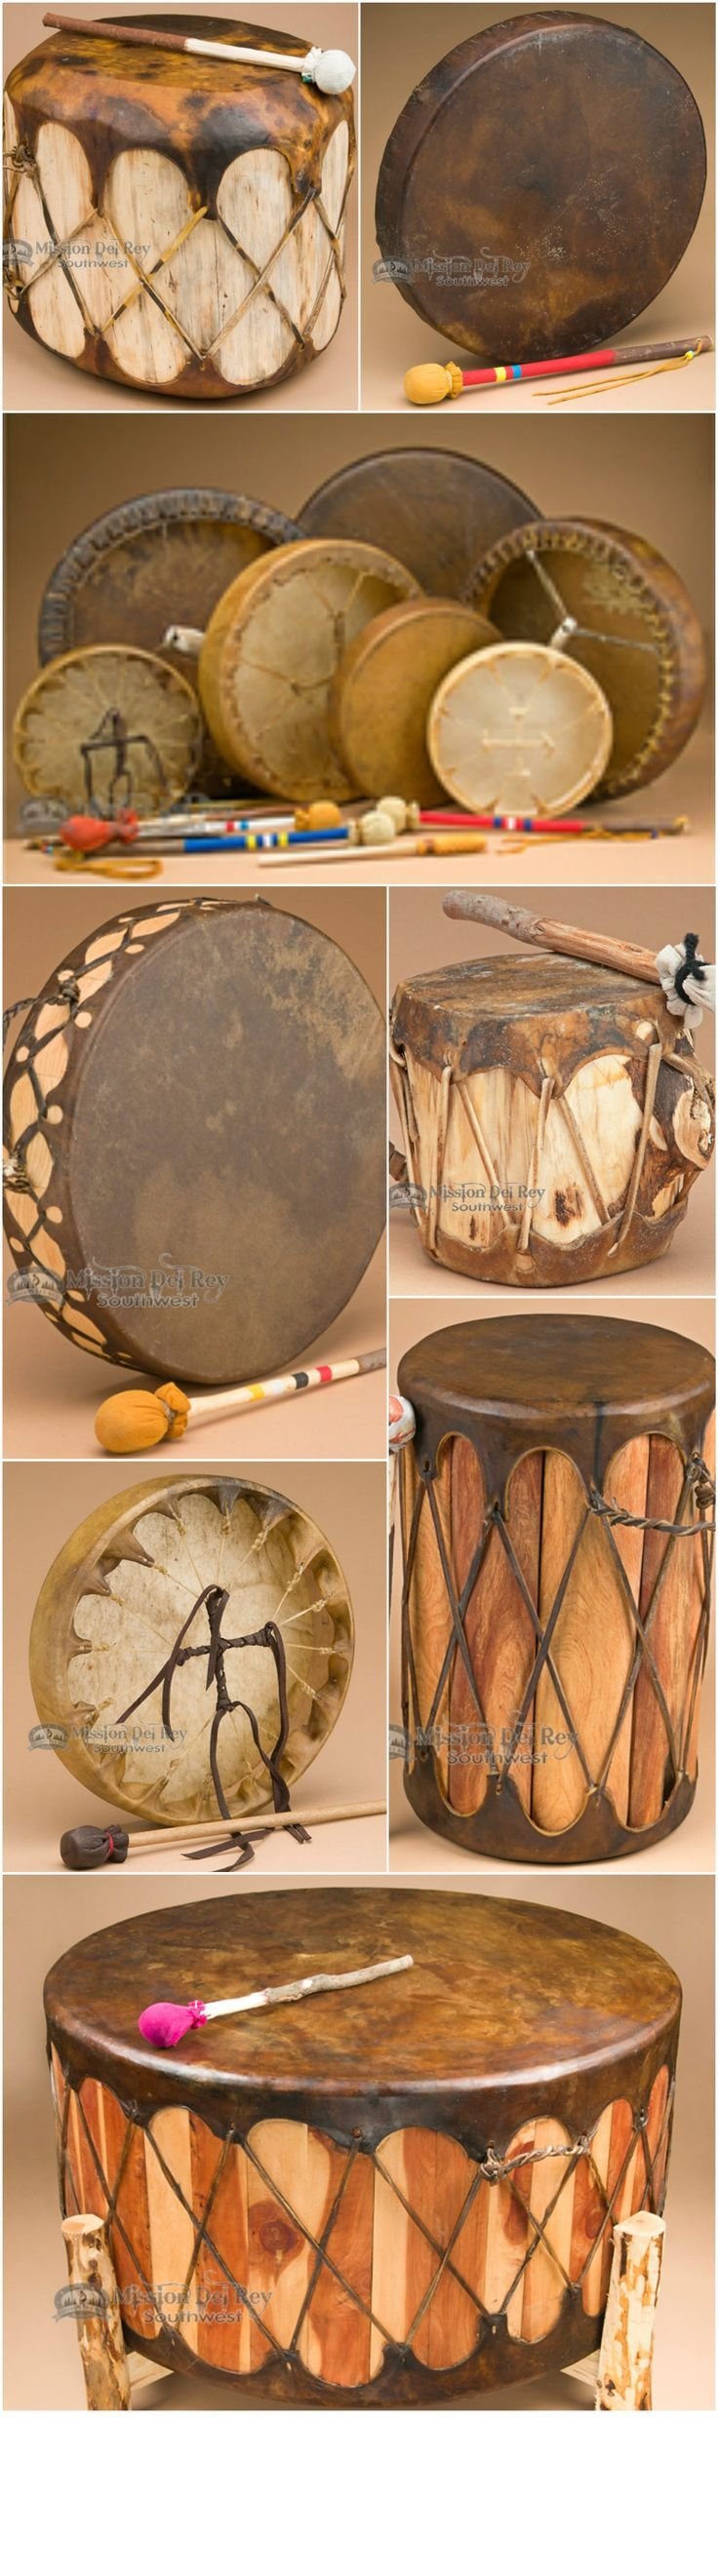 See our gallery of Native American drums for sale, to find the best in Native rawhide drums. Created by hand, our drums are made with a variety of hides including goat, deer, elk, buffalo, moose and horse. Customers often use our Pow wow drums and Native American hand drums in drumming circles, pow wows, Native ceremonies, and home decor. Check out our wide variety of drum styles from the Apache, Tarahumara, Shoshone, Navajo, Cherokee, Pueblo and Sioux, for great choices in Native drums.